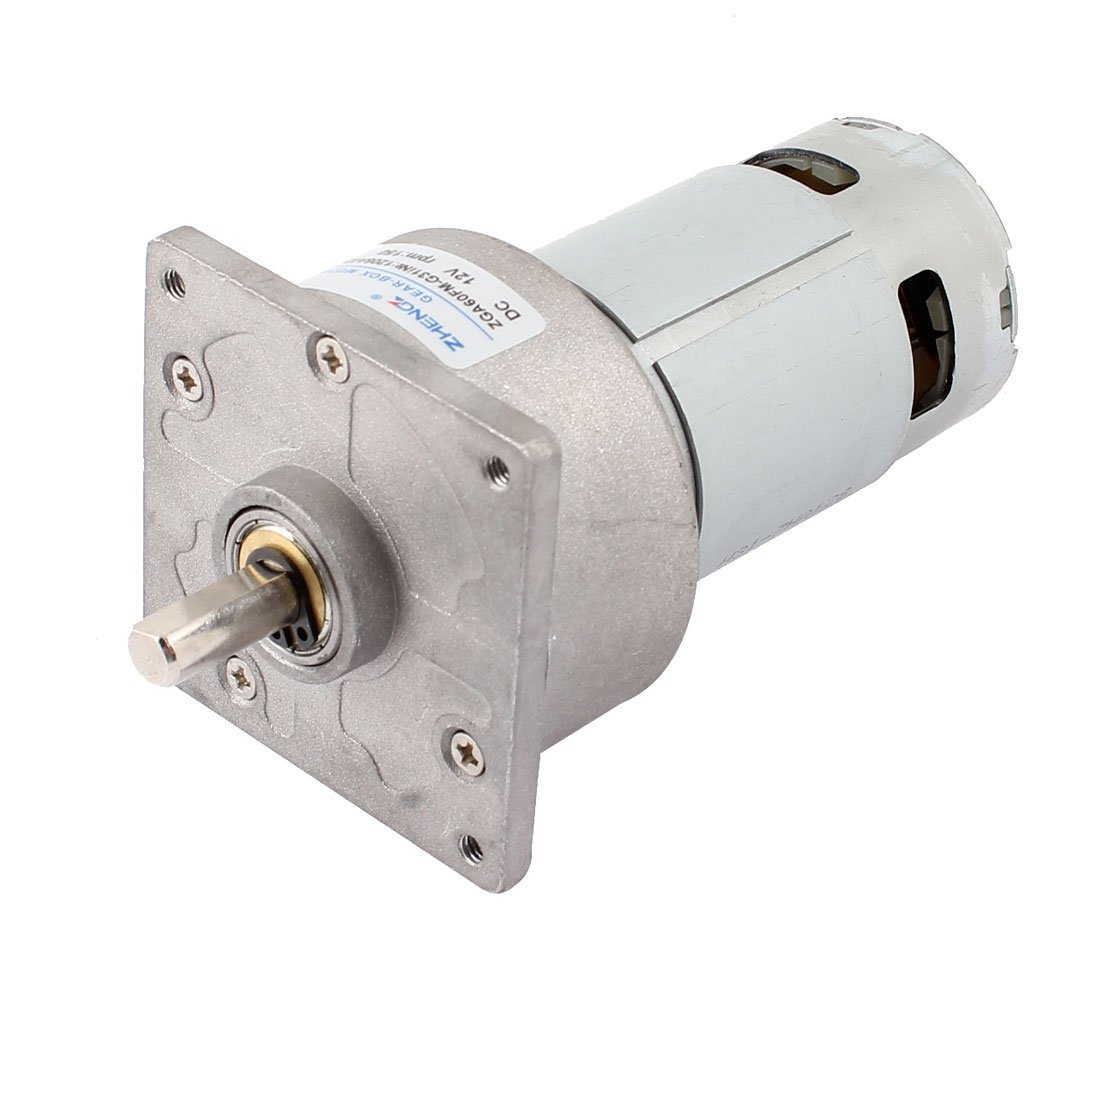 DC 12V 4600r/Min Flange Mounted Speed Reduce Magnetic Geared Motor